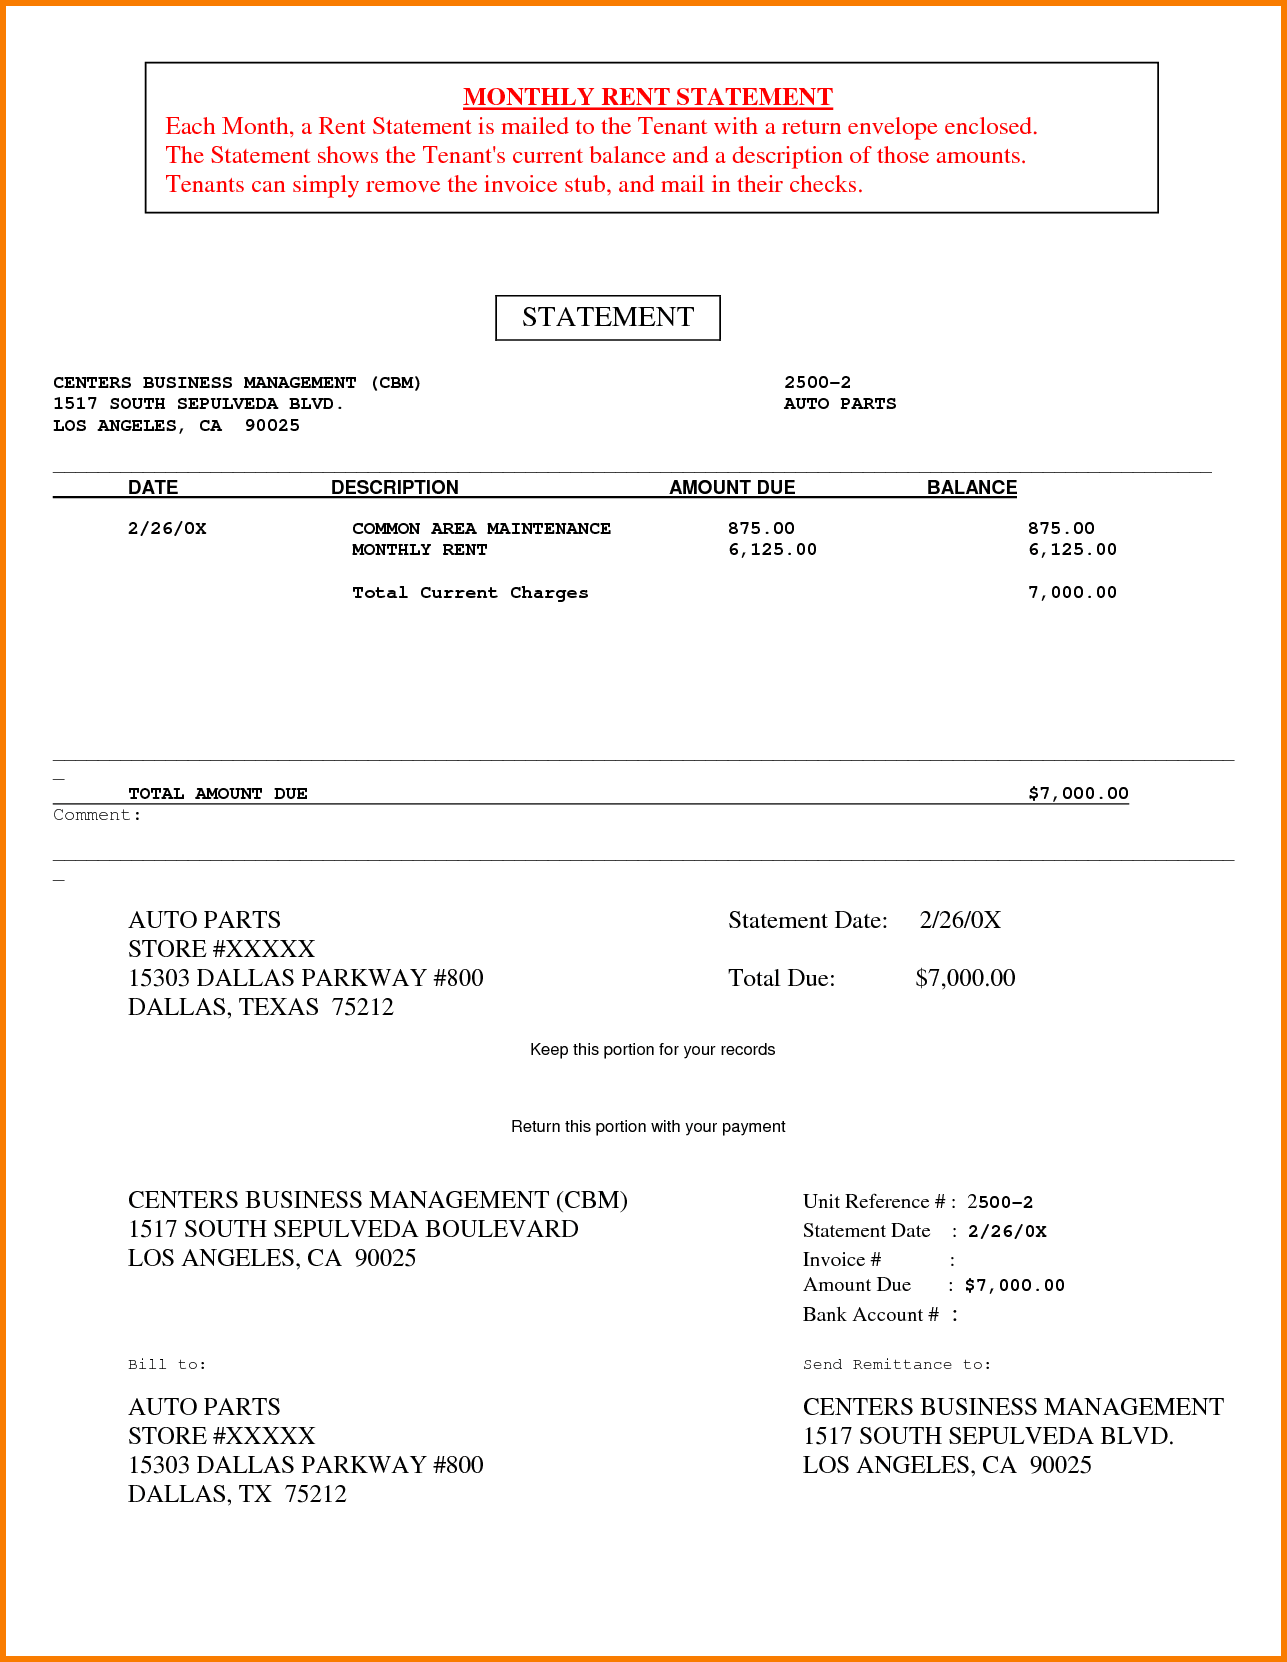 Rental Invoice To Tenant 1 Rental Invoice Template Spreadsheet Templates for Busines Spreadsheet Templates for Busines Rental Invoice Template Microsoft